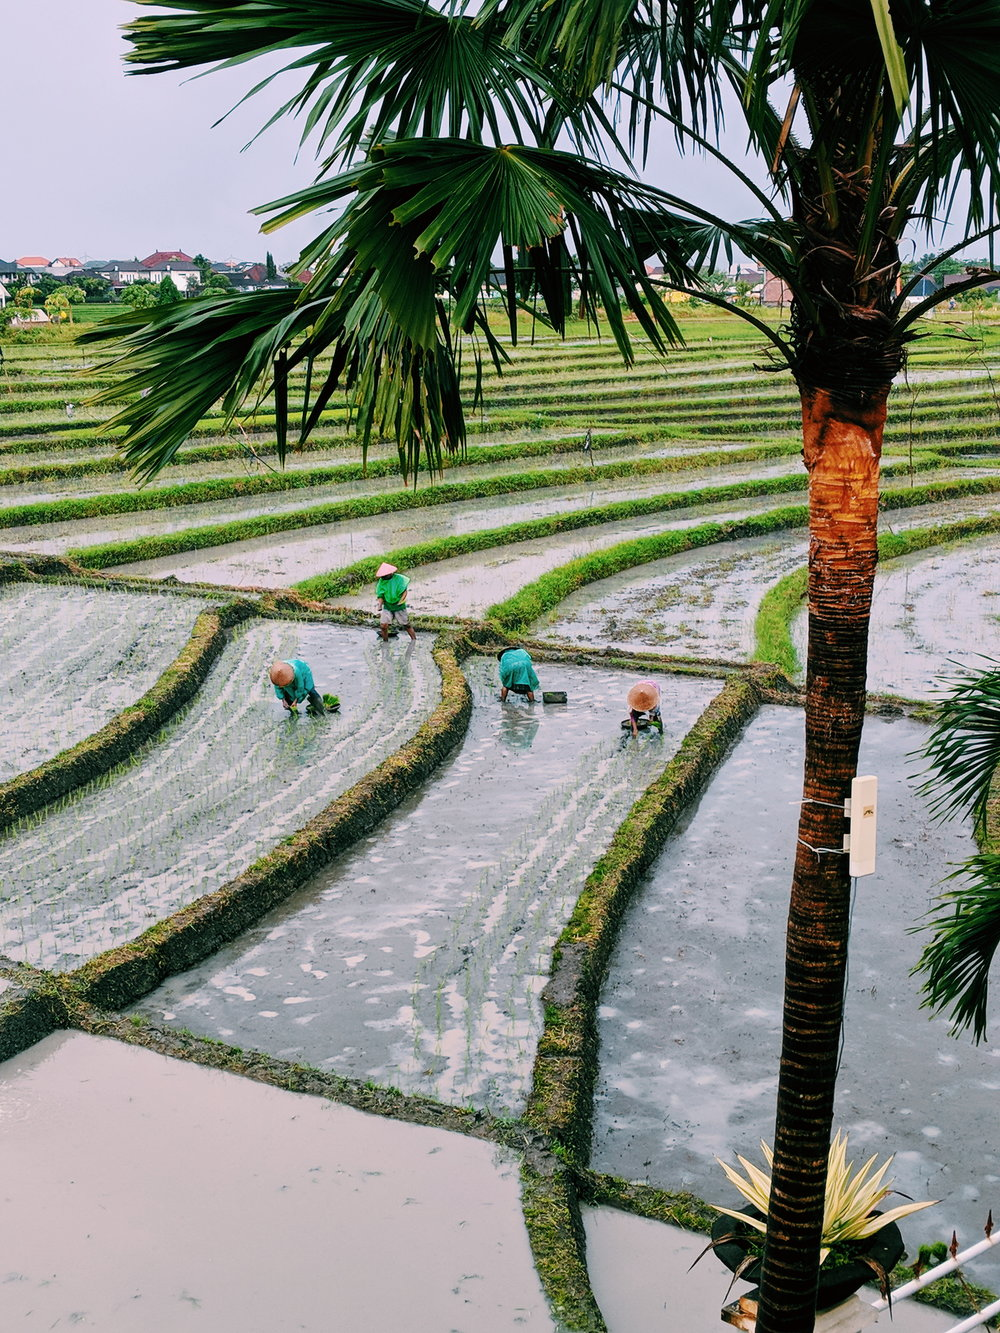 Bona Kubu Rice Terrace - This rice terrace is located right beside the guest house I stayed in the month of January. I tried to help them but no dice.